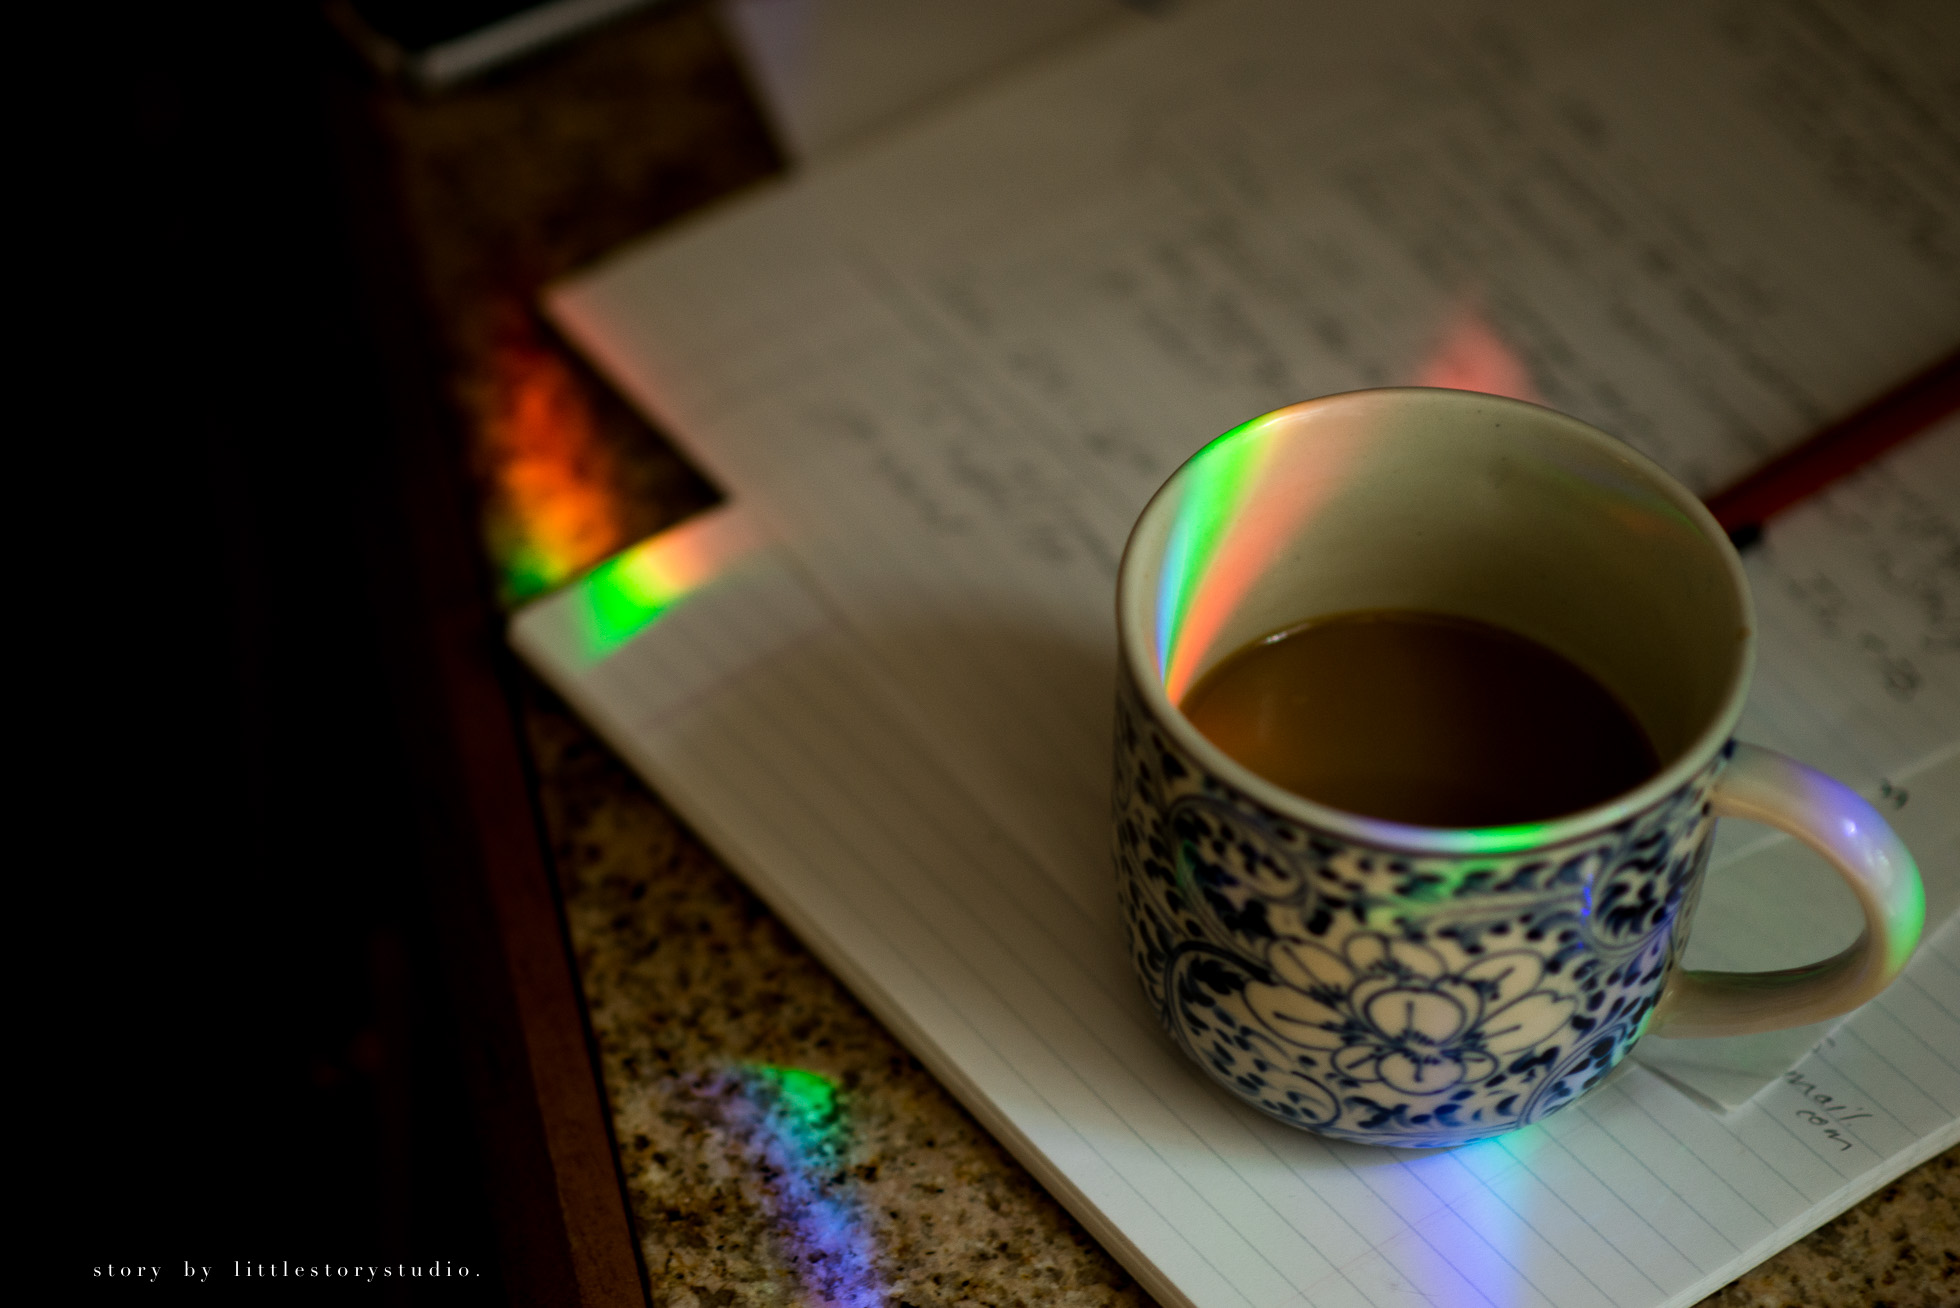 pittsburgh-photographer-rainbows-on-coffee-cup